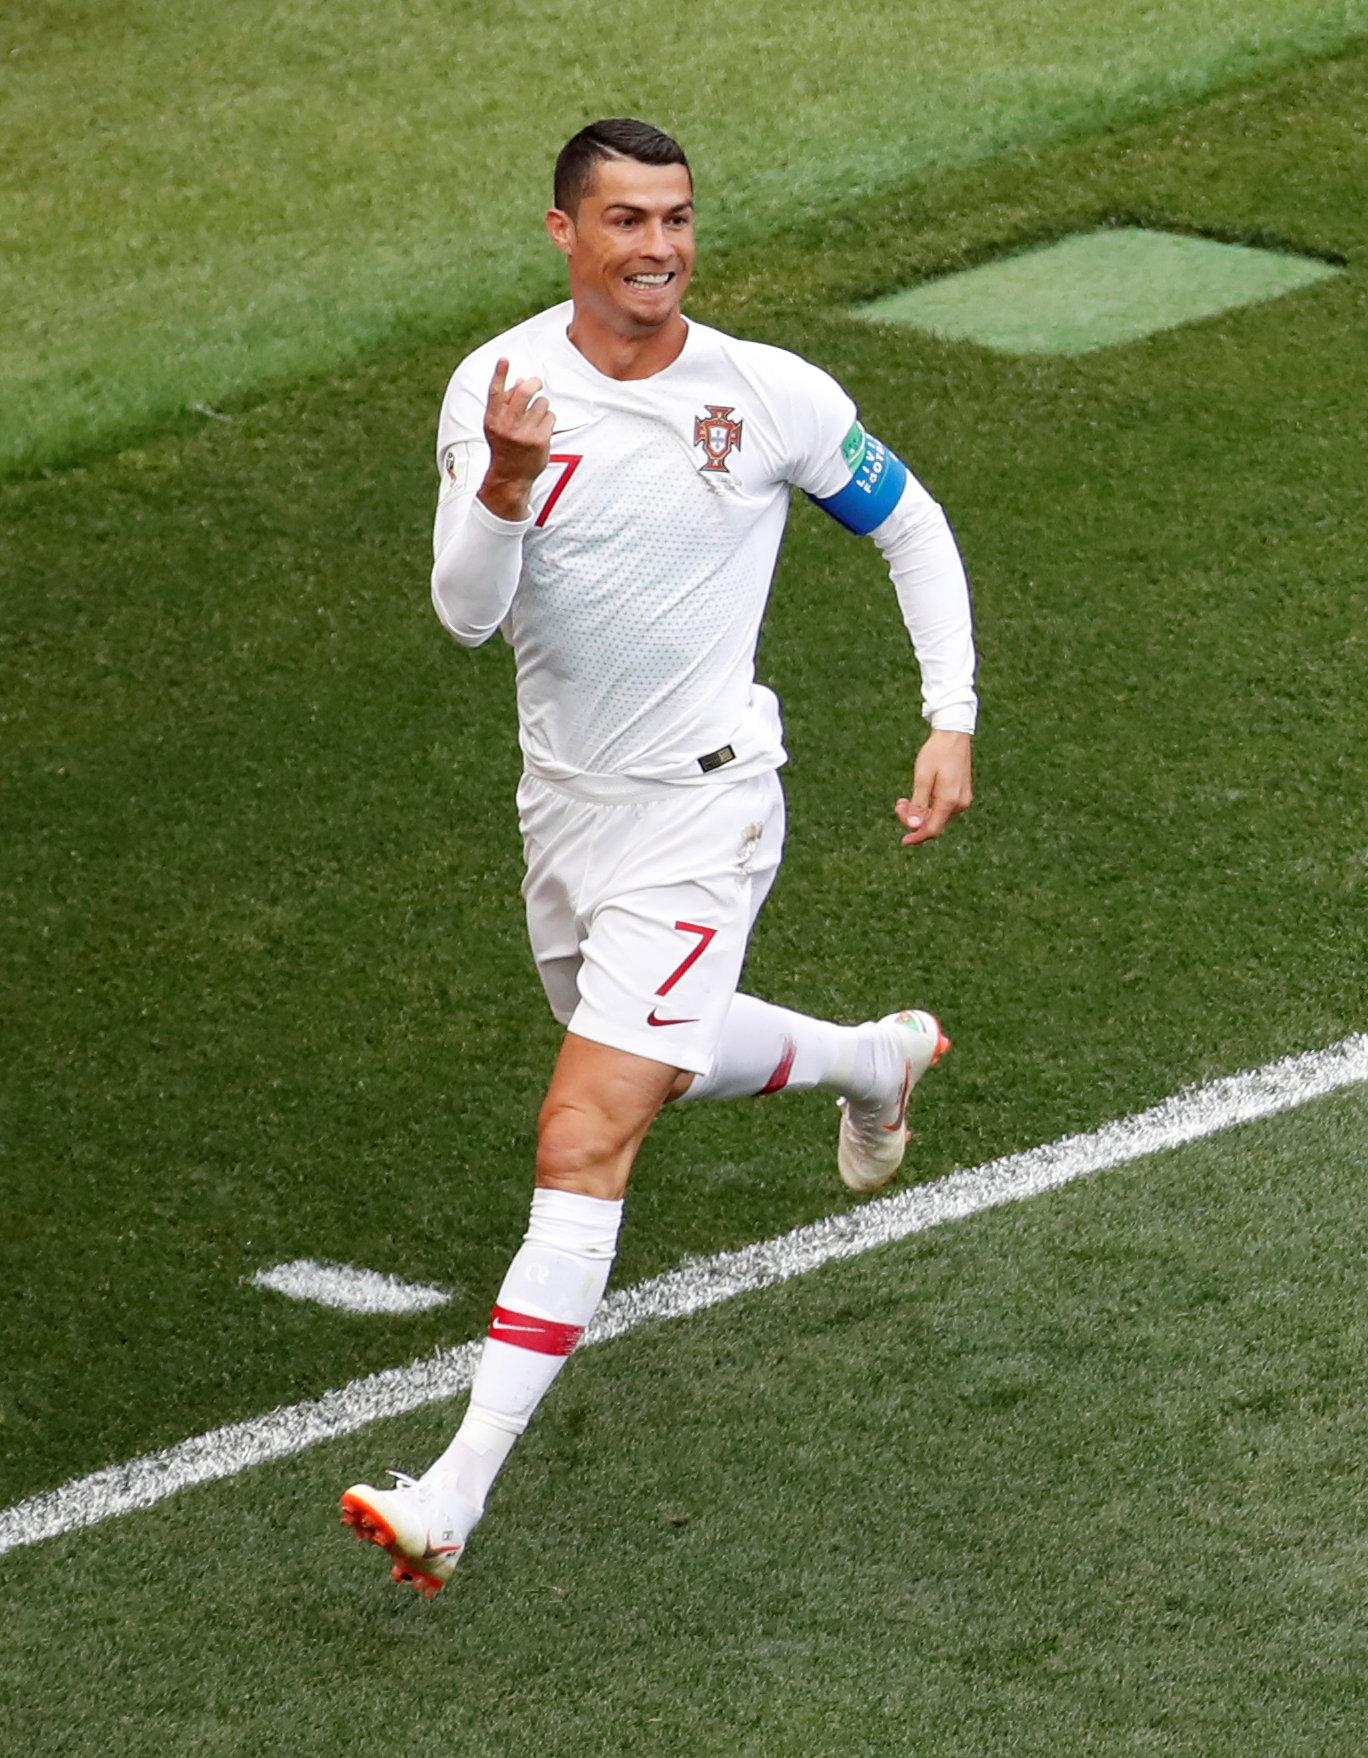 Cristiano Ronaldo's Portugal are in a group with Italy and Poland